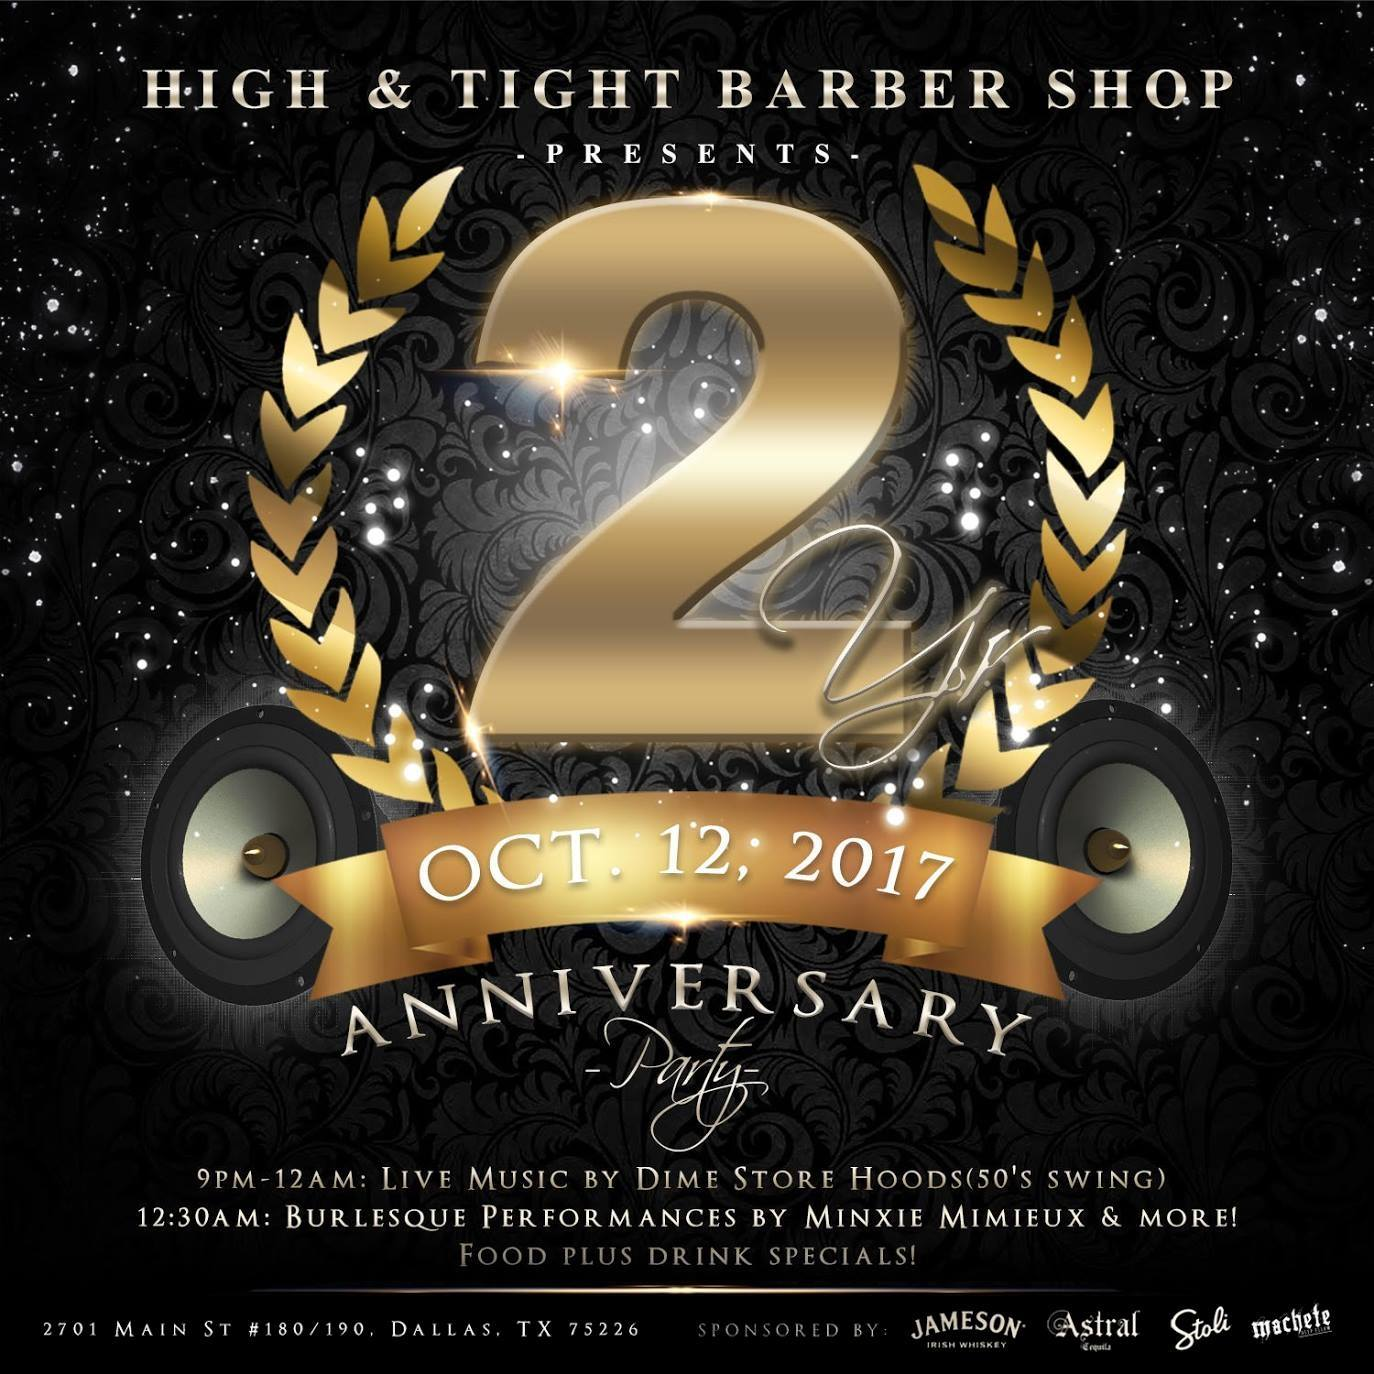 HIGH & TIGHT 2 YEAR ANNIVERSARY PARTYWONTSTOP.jpg